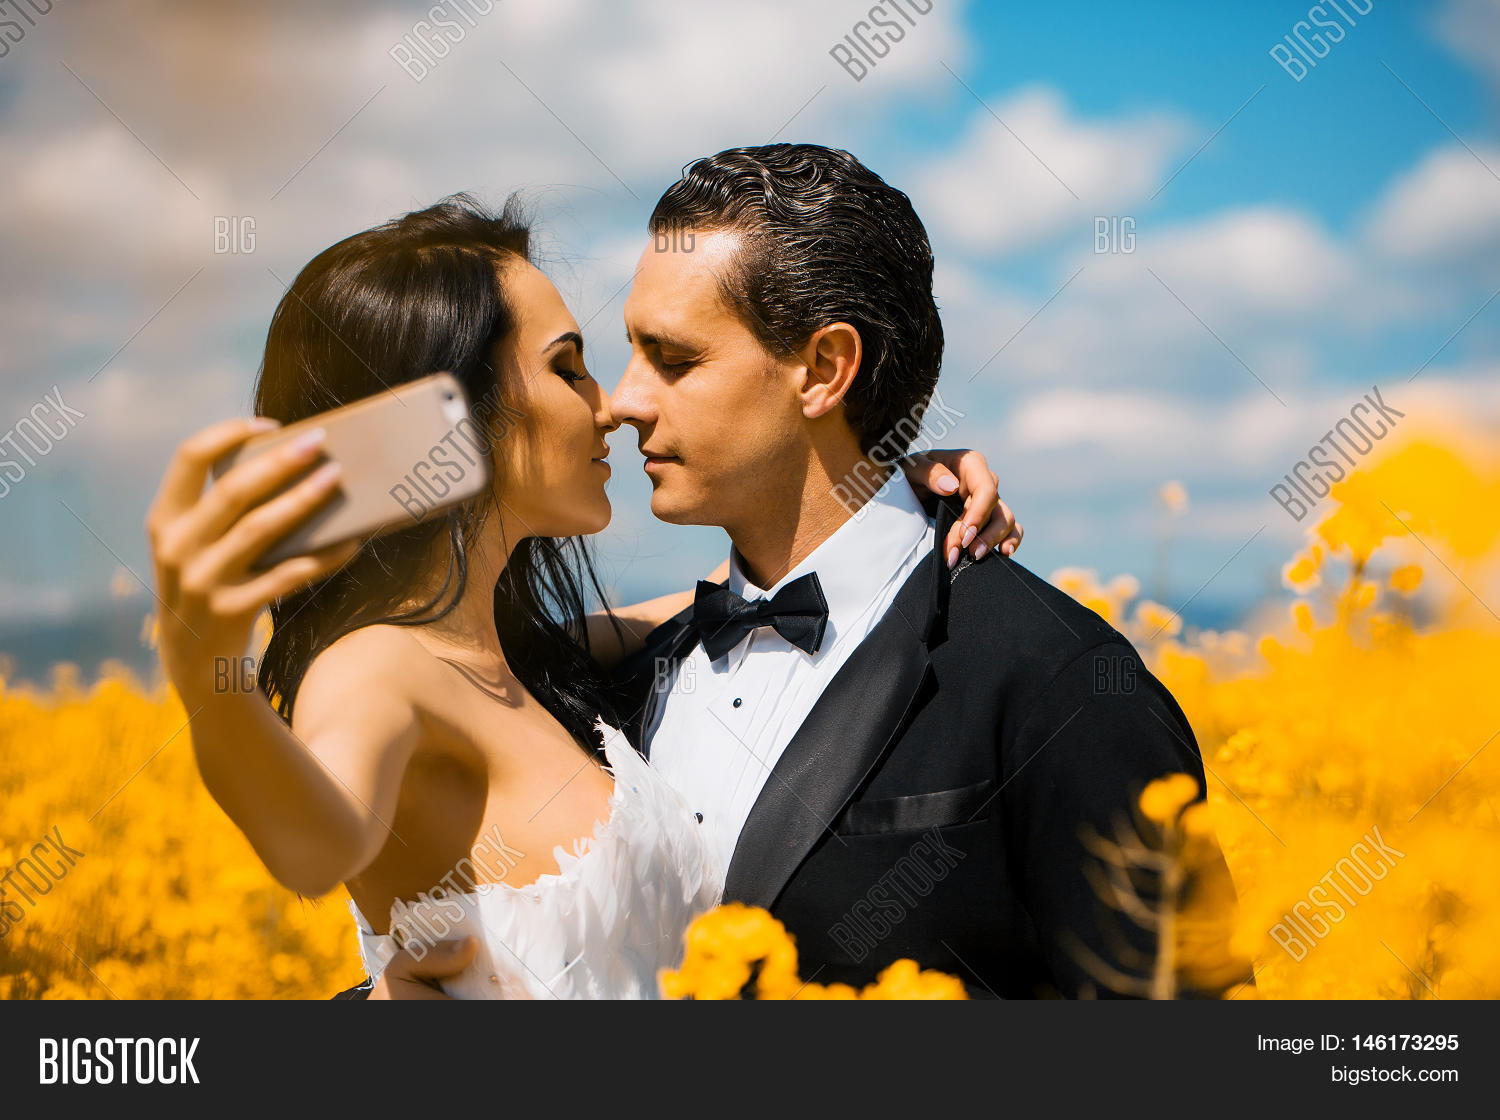 young wedding couple of sexy girl with pretty face in white bride dress  holds mobile phone and handsome man in black groom suit kiss in field with  yellow ... 4b3d17bea